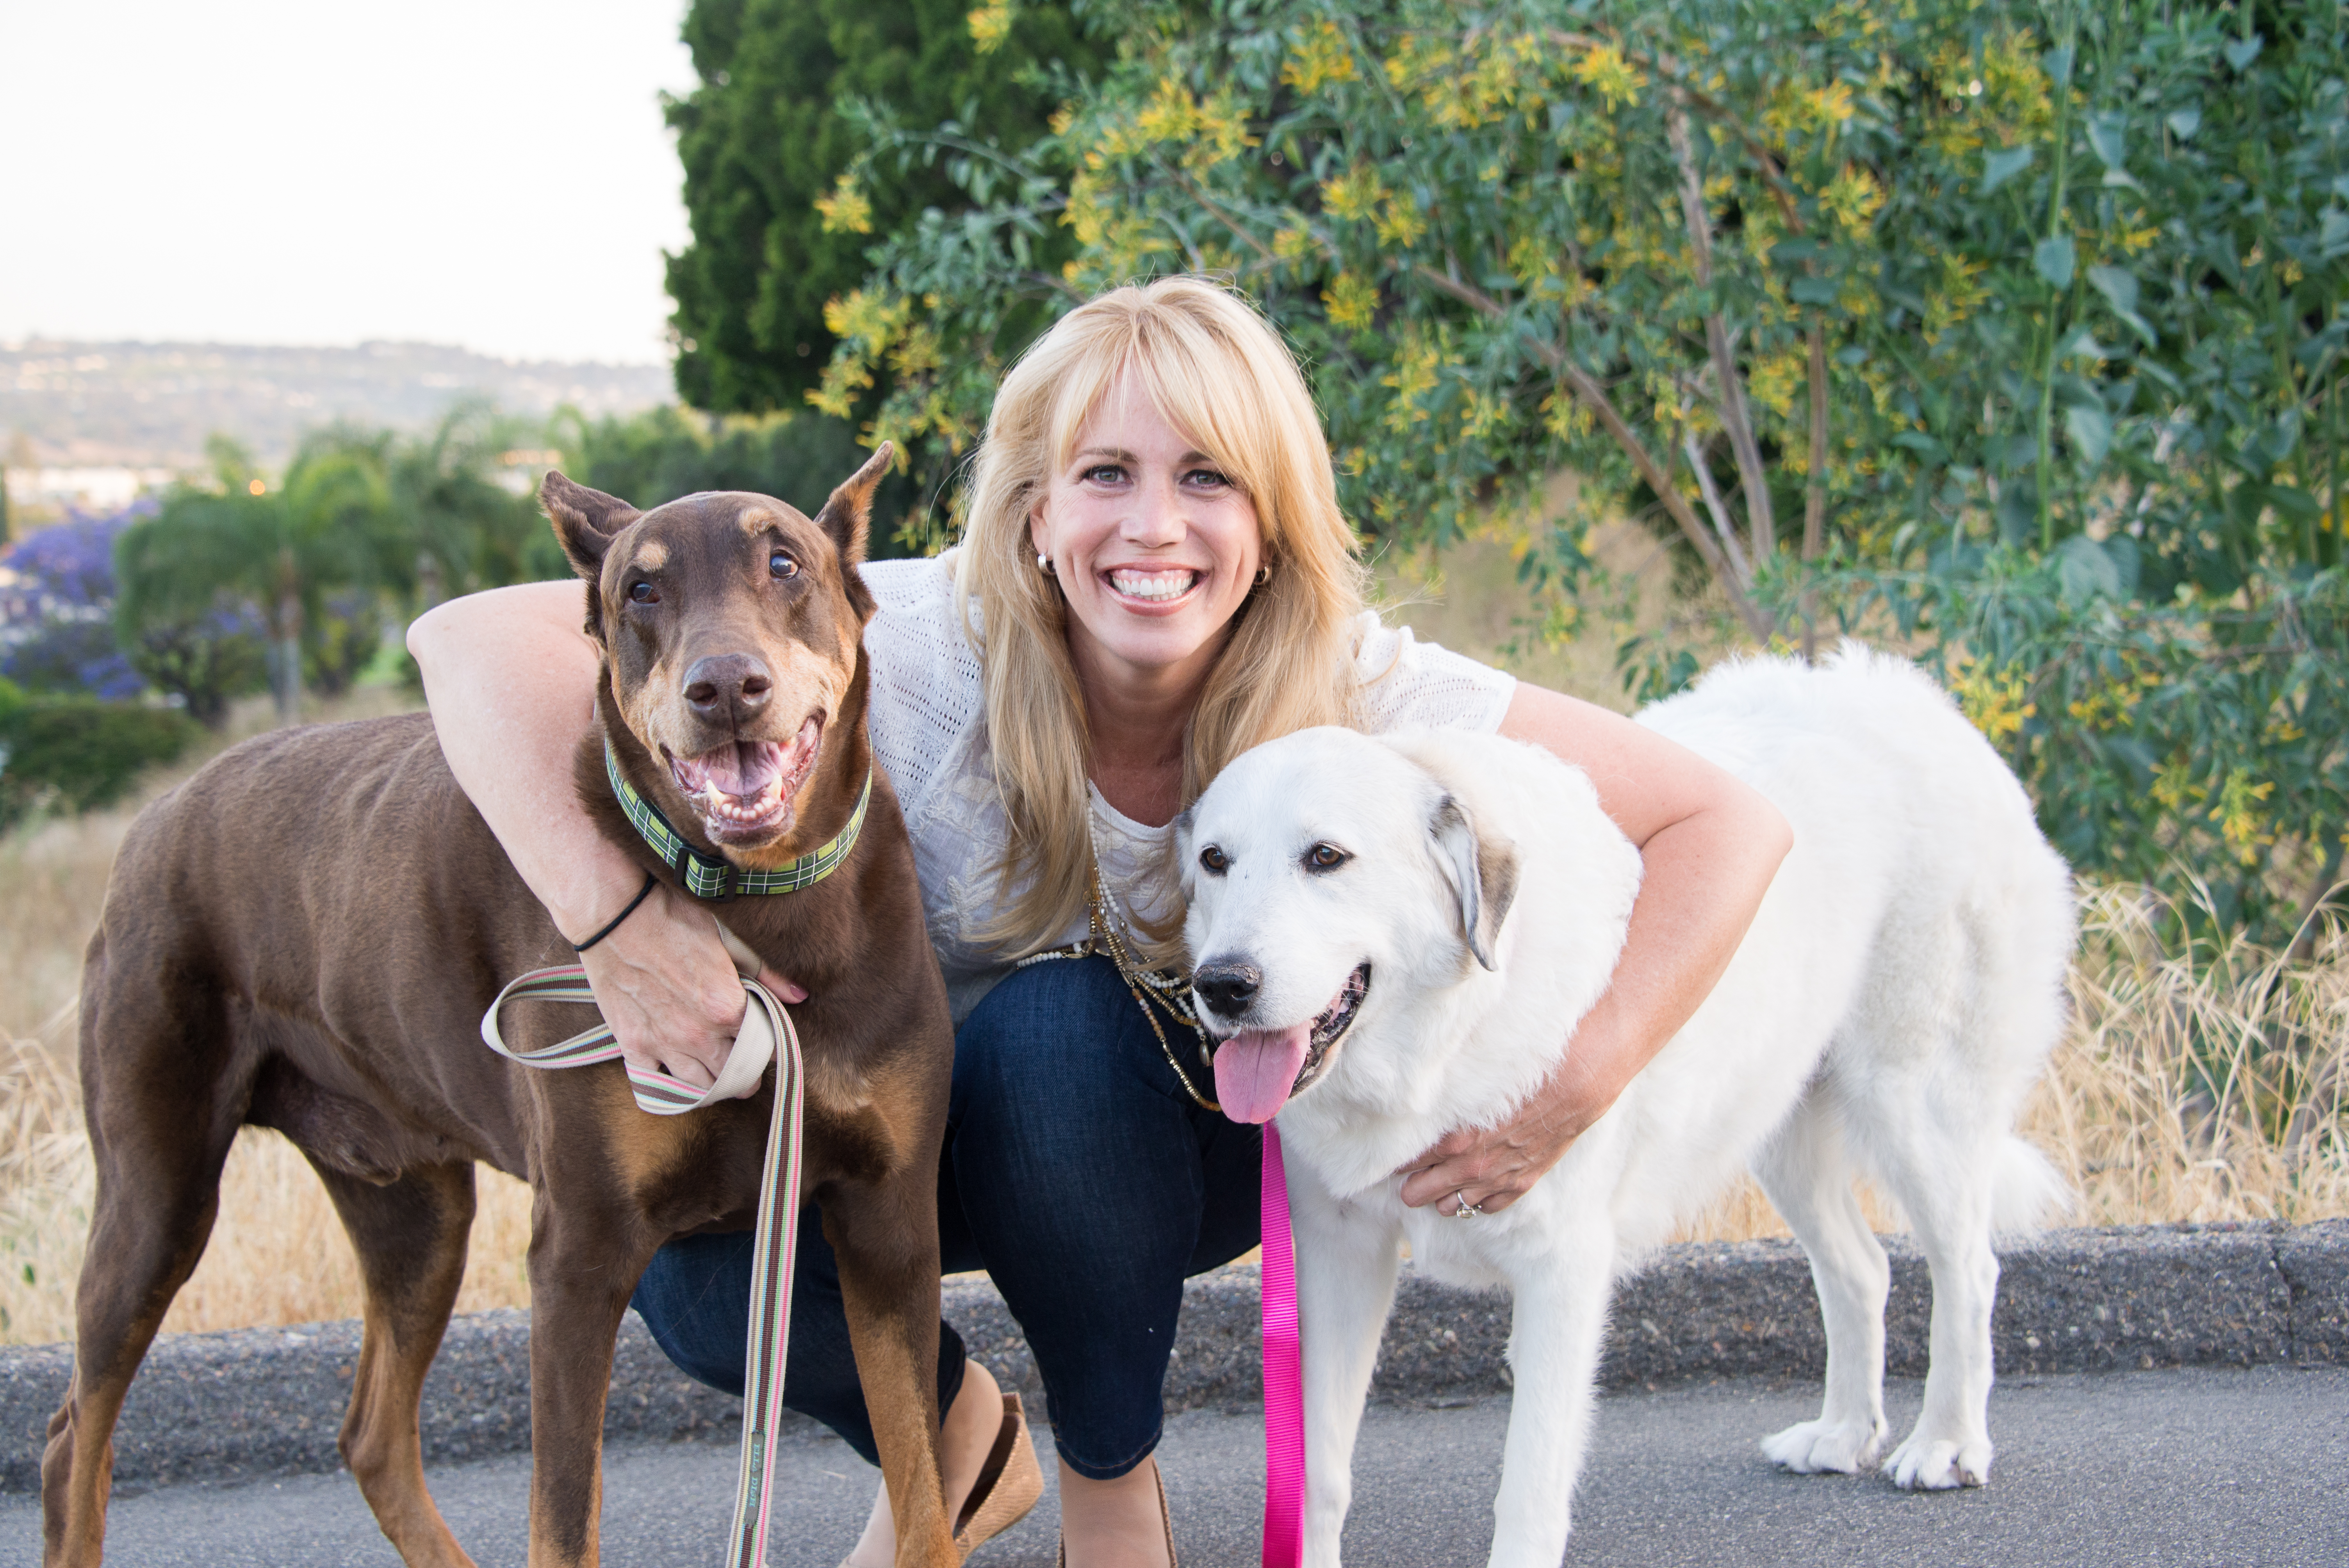 blonde woman between two large dogs